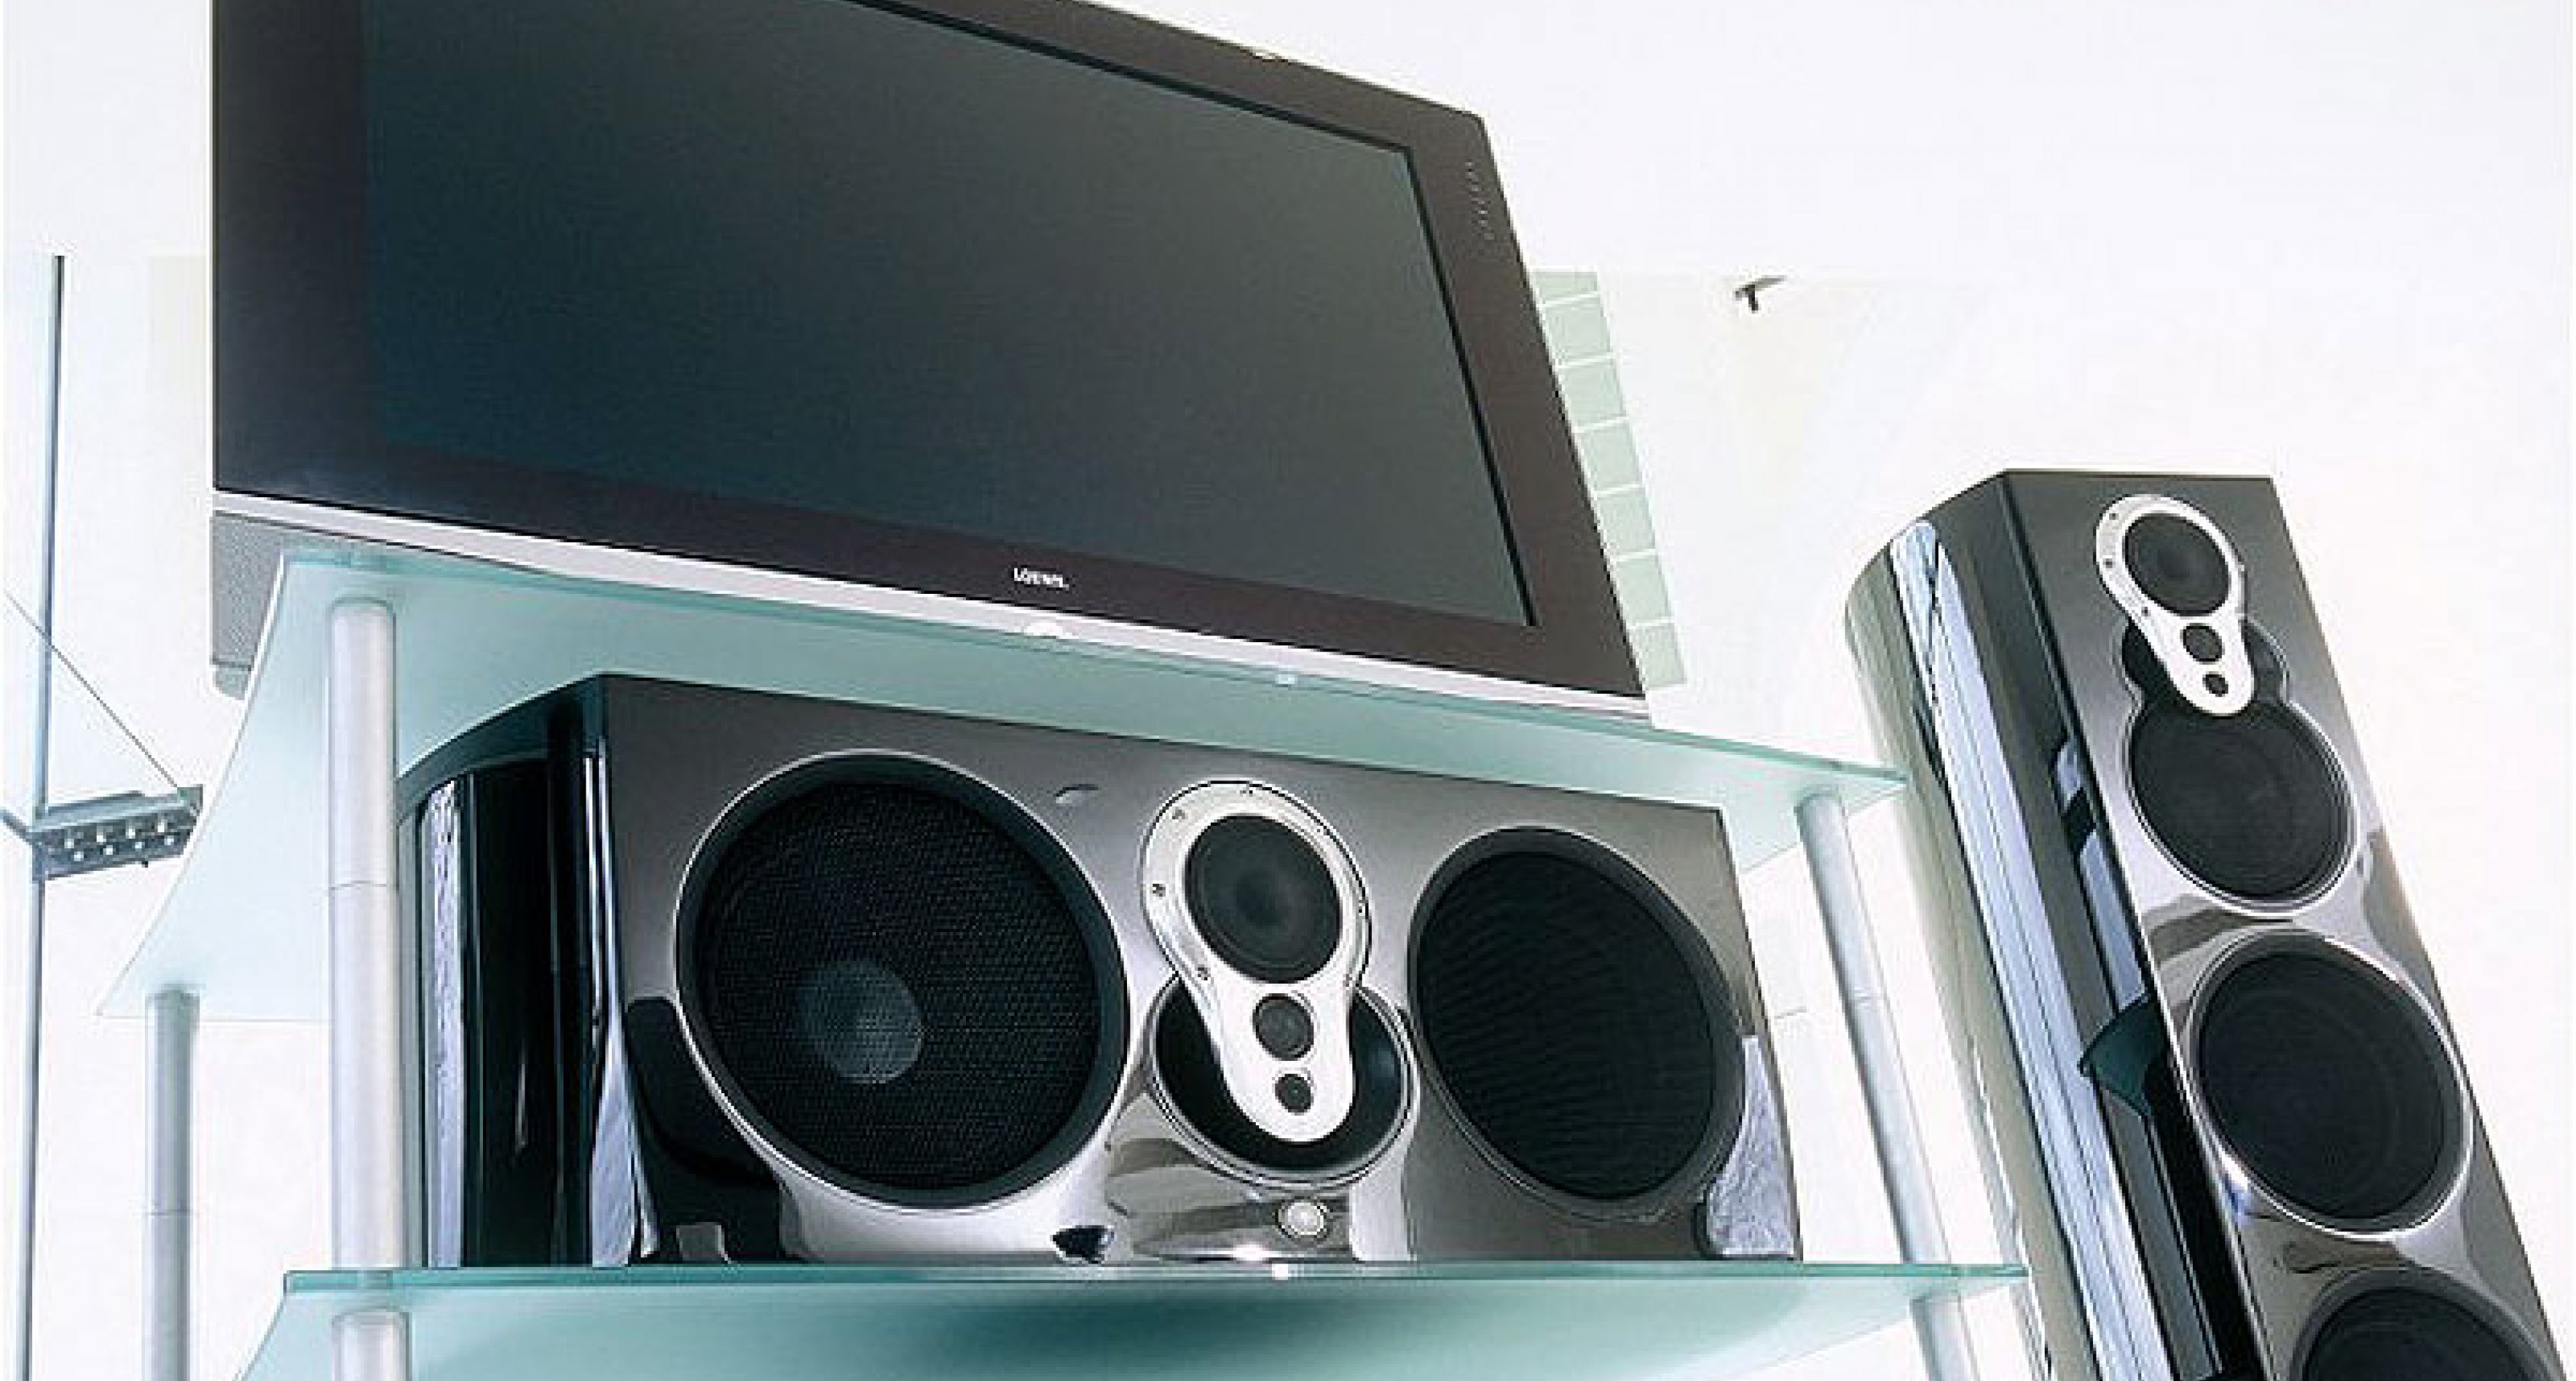 The new Linn Artikulat loudspeaker system